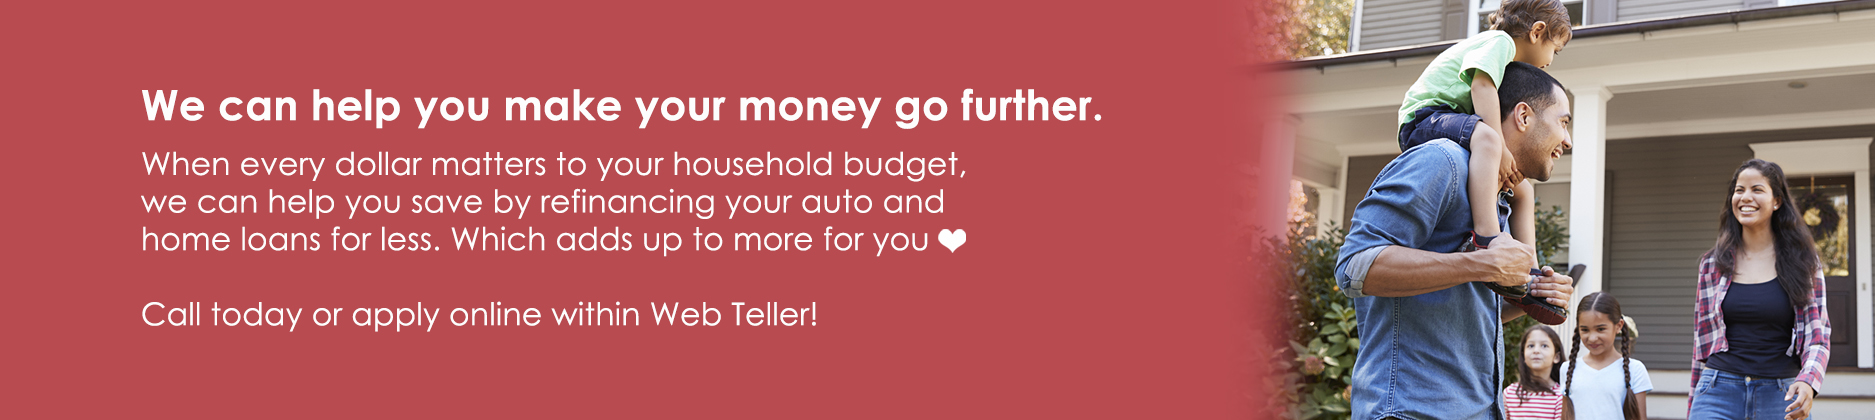 Make your money go further for your household budget. Refinance your home and auto loans today.